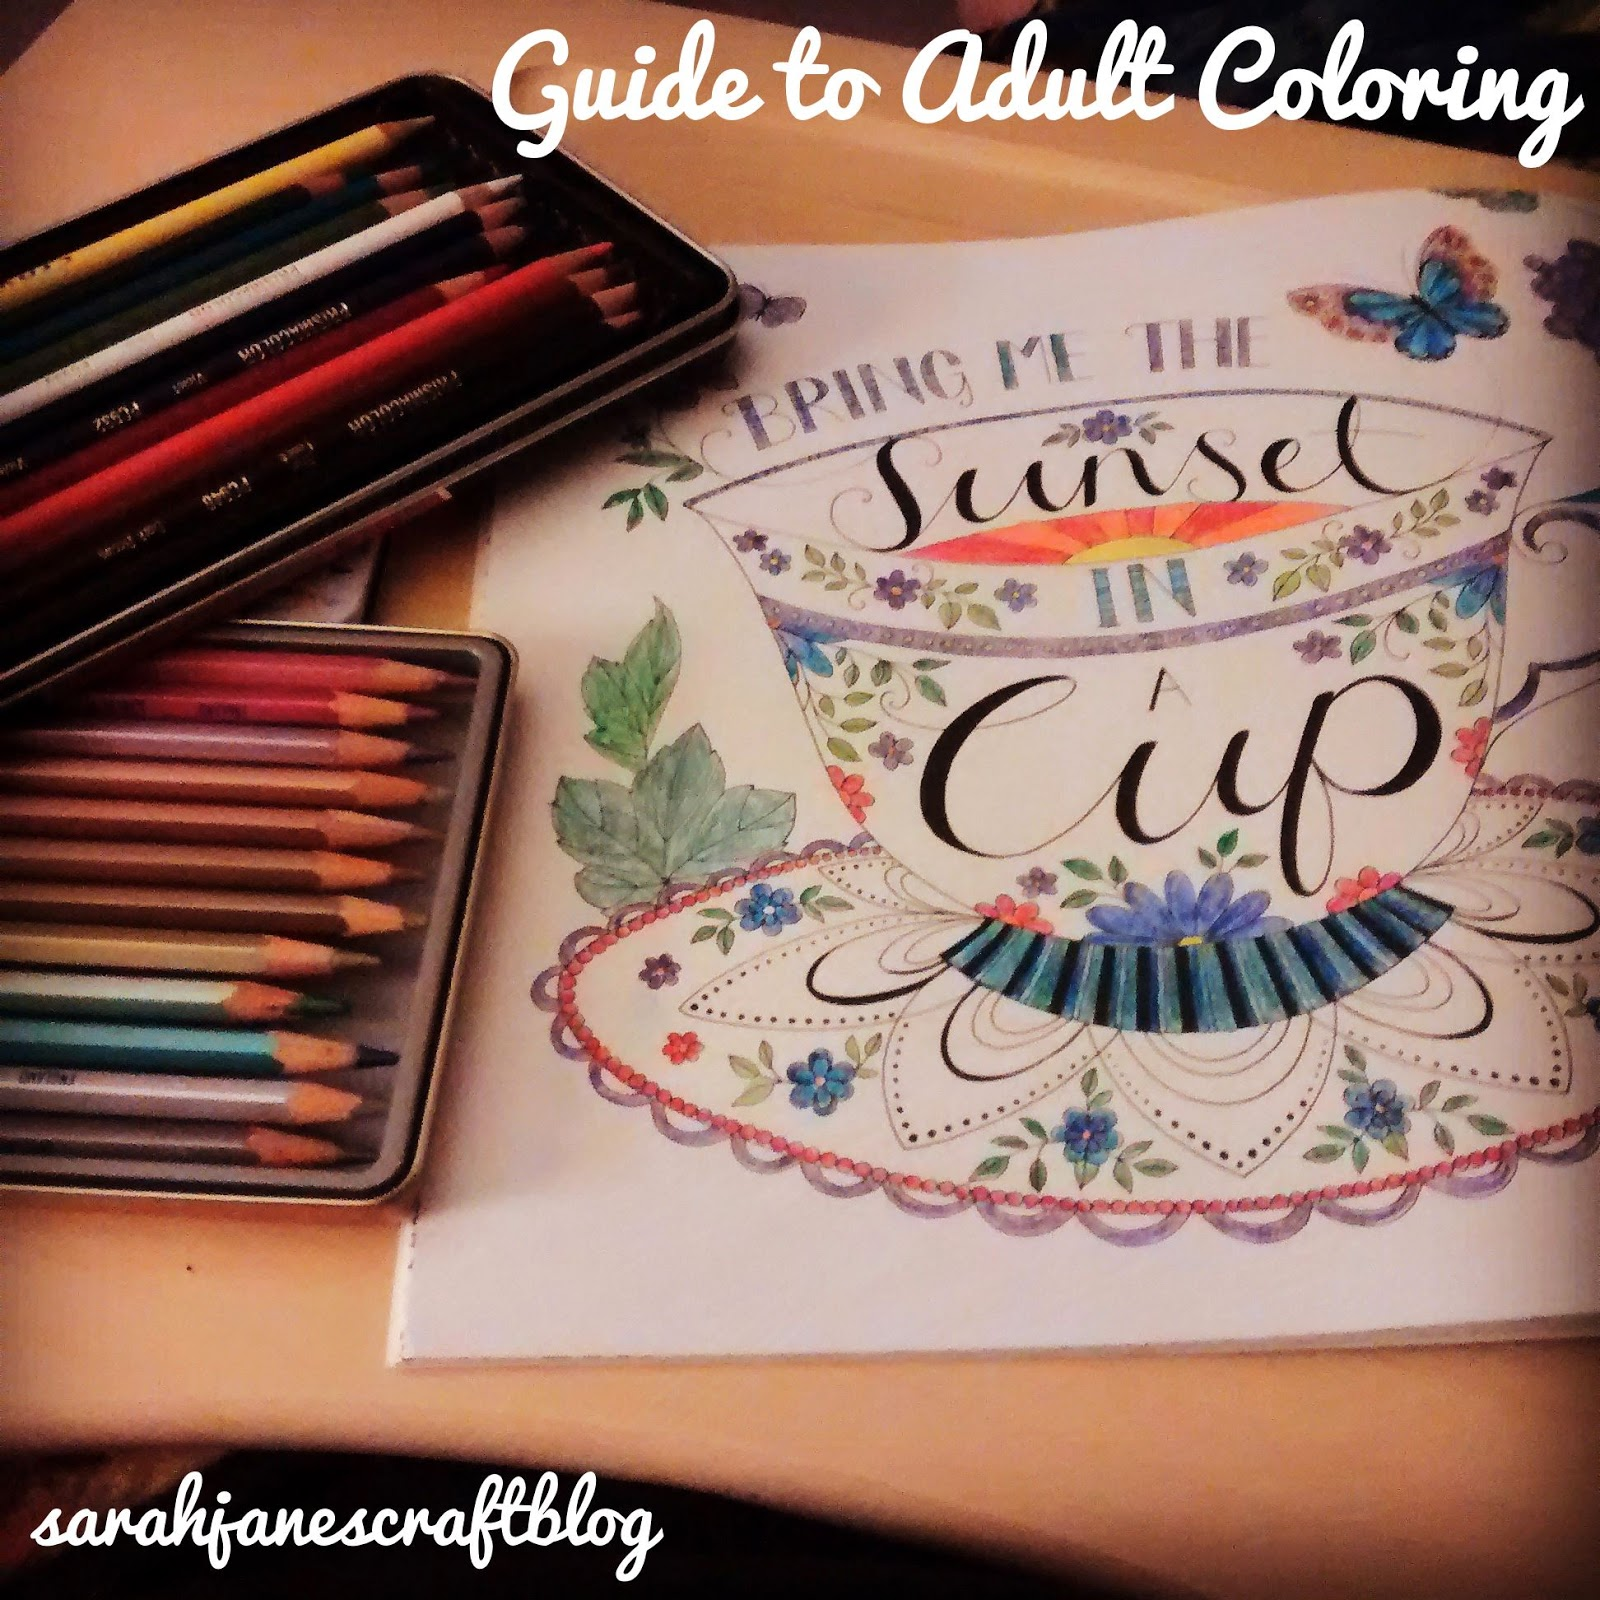 Guide To Adult Coloring Books